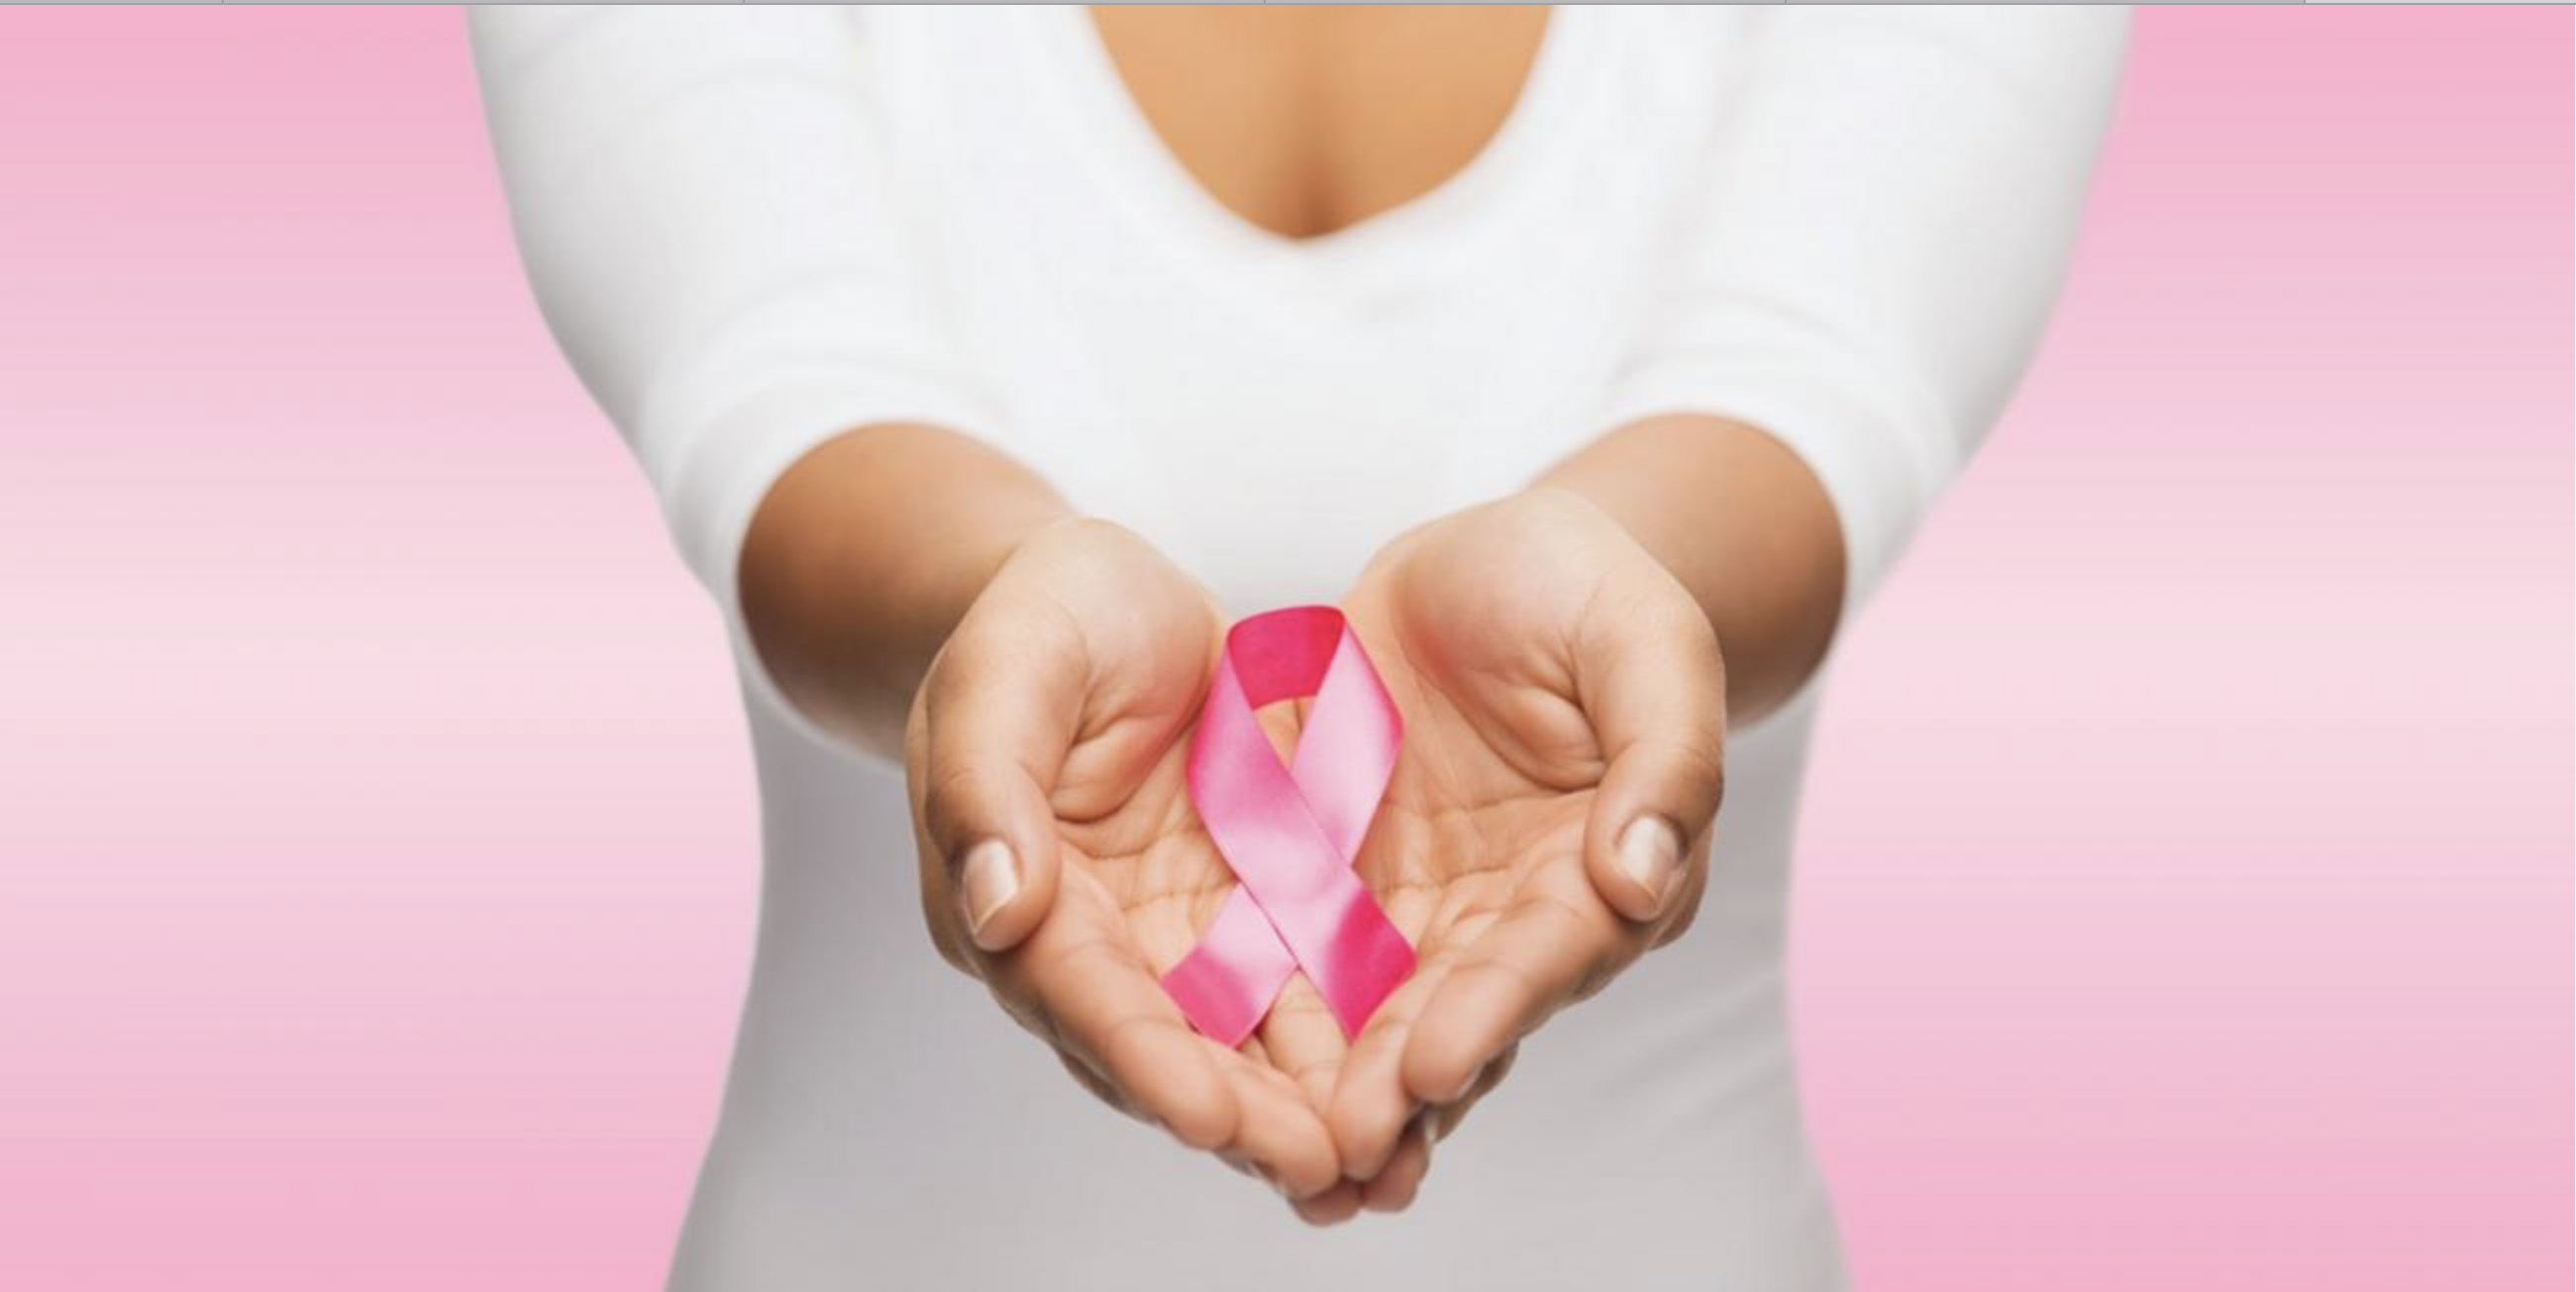 Importance of Breast Cancer Screening - Mammography